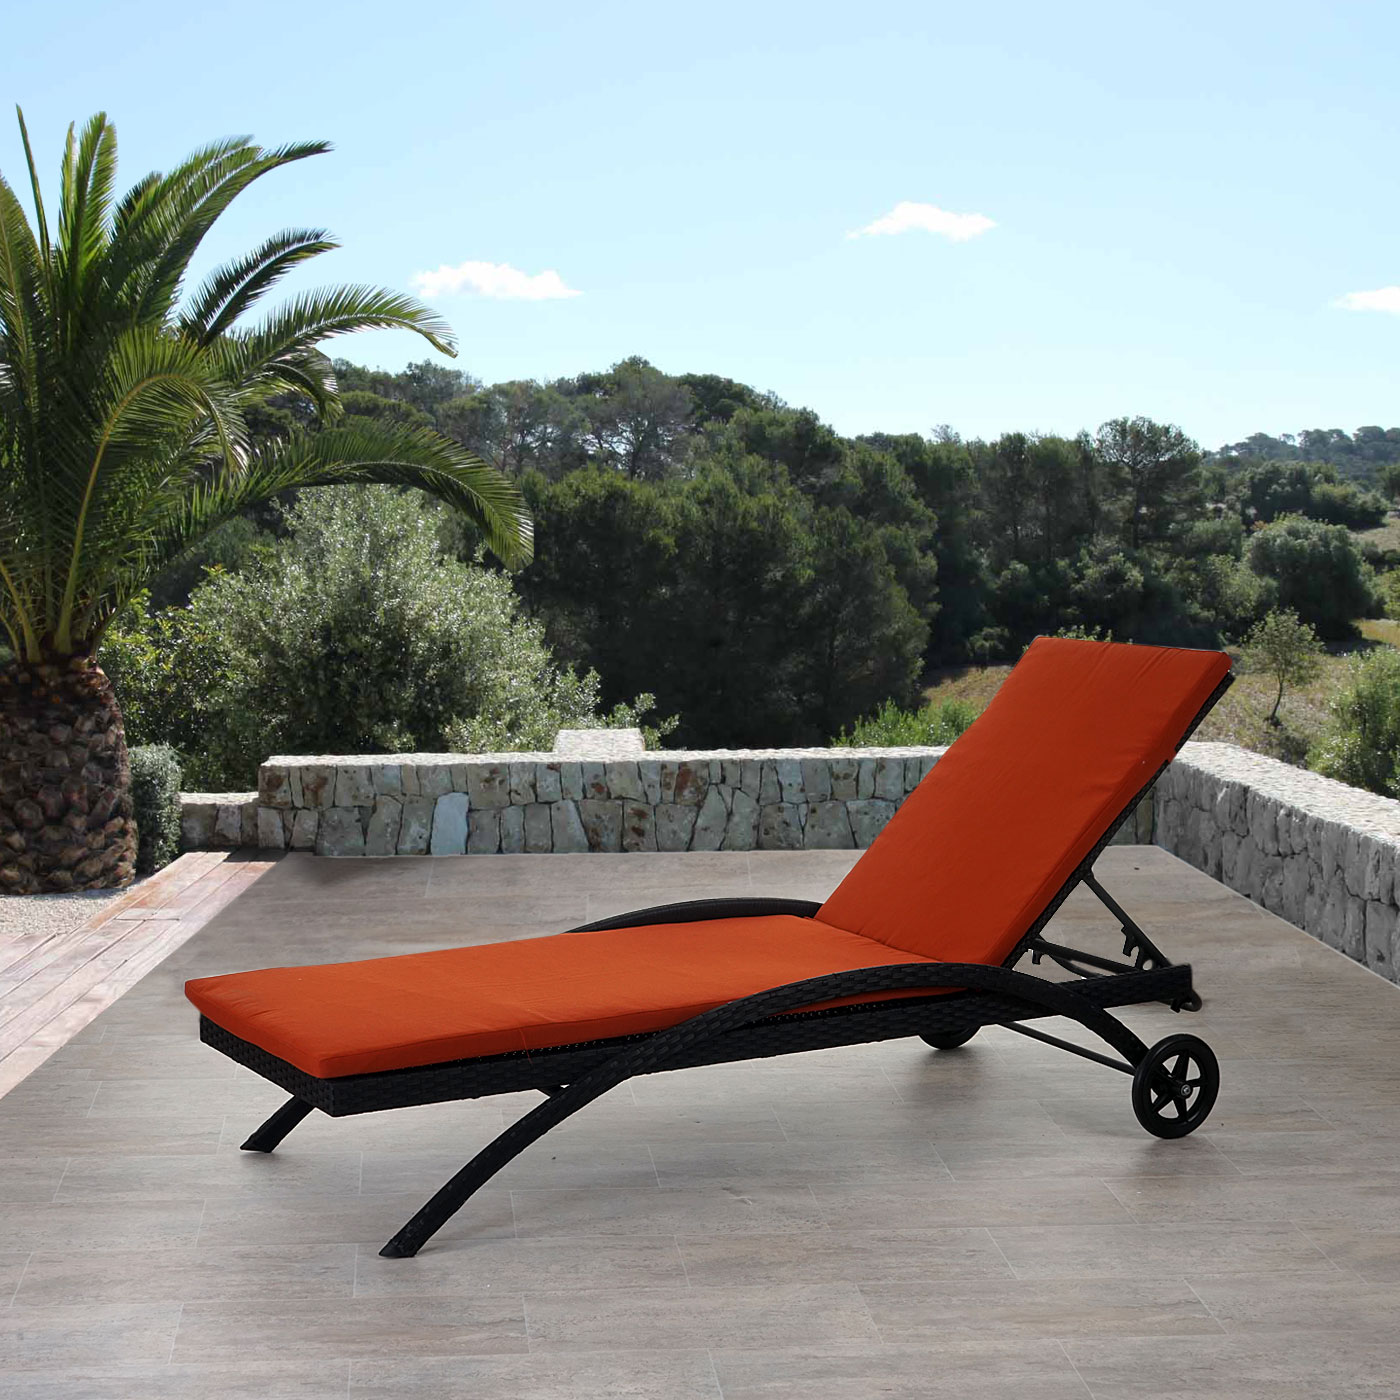 sonnenliege kastoria relaxliege gartenliege poly rattan anthrazit auflage terrakotta. Black Bedroom Furniture Sets. Home Design Ideas